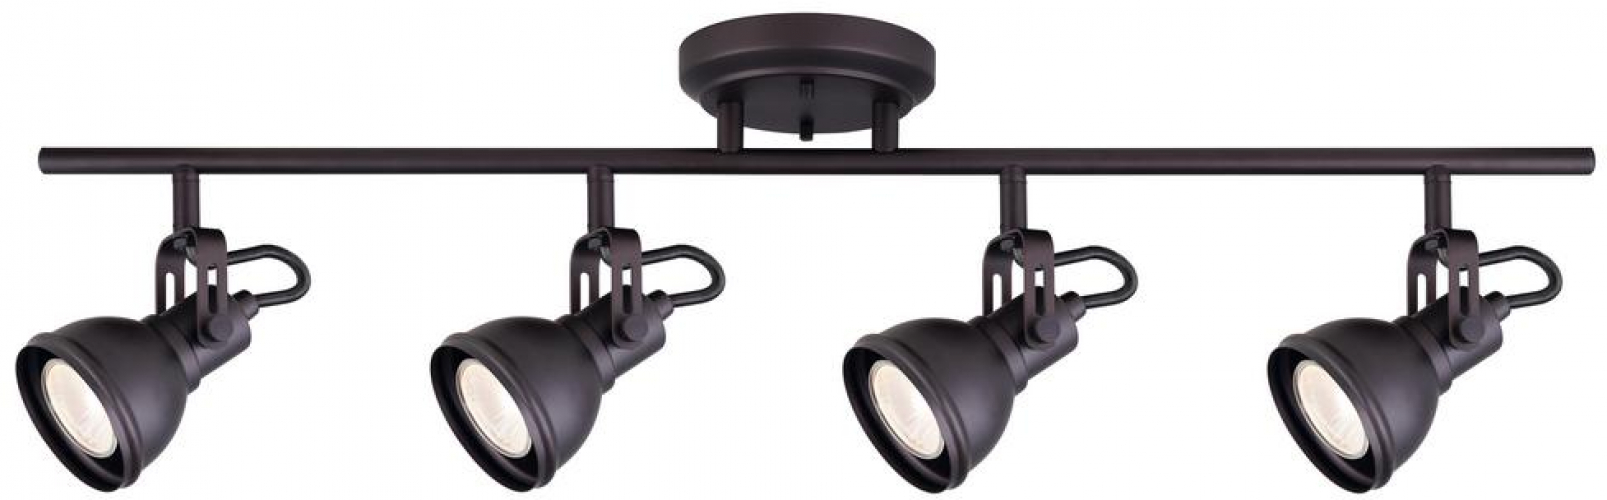 Details About Fixed Polo 4 Light Track Lighting Decorative Fixture 29 In Oil Rubbed Bronze